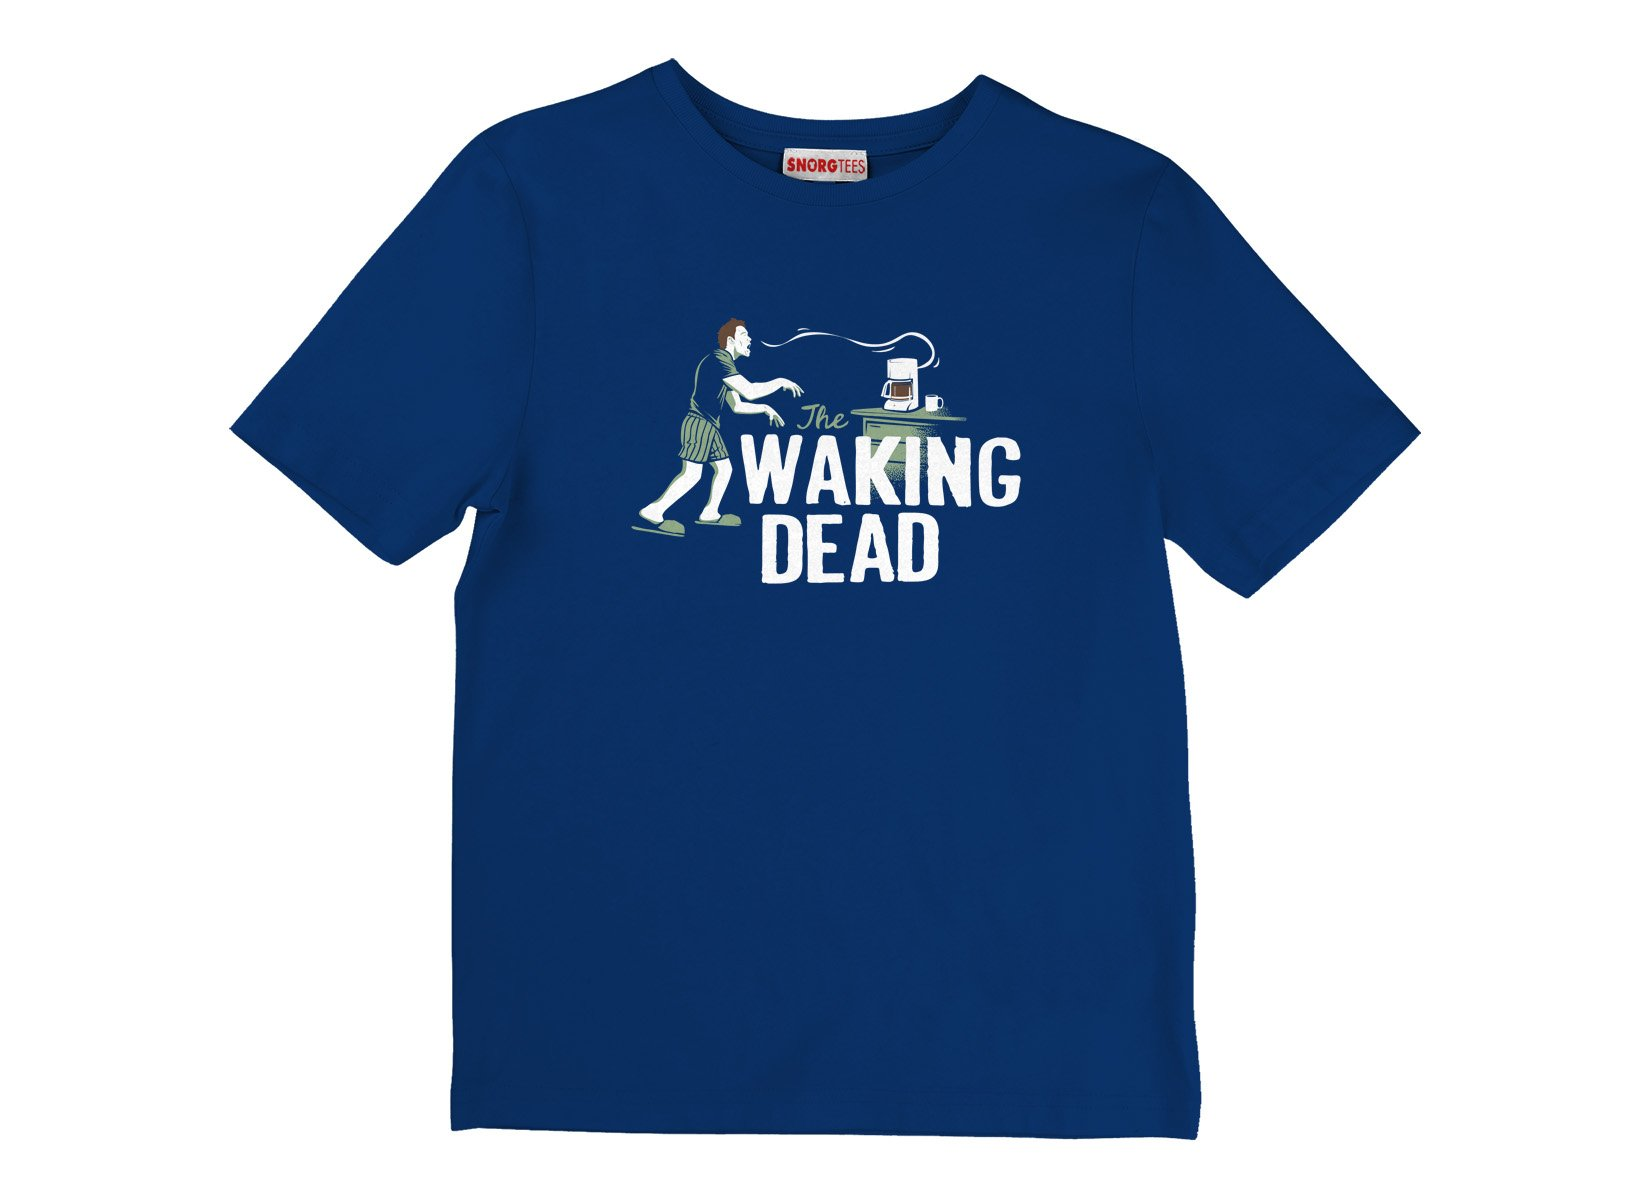 The Waking Dead on Kids T-Shirt